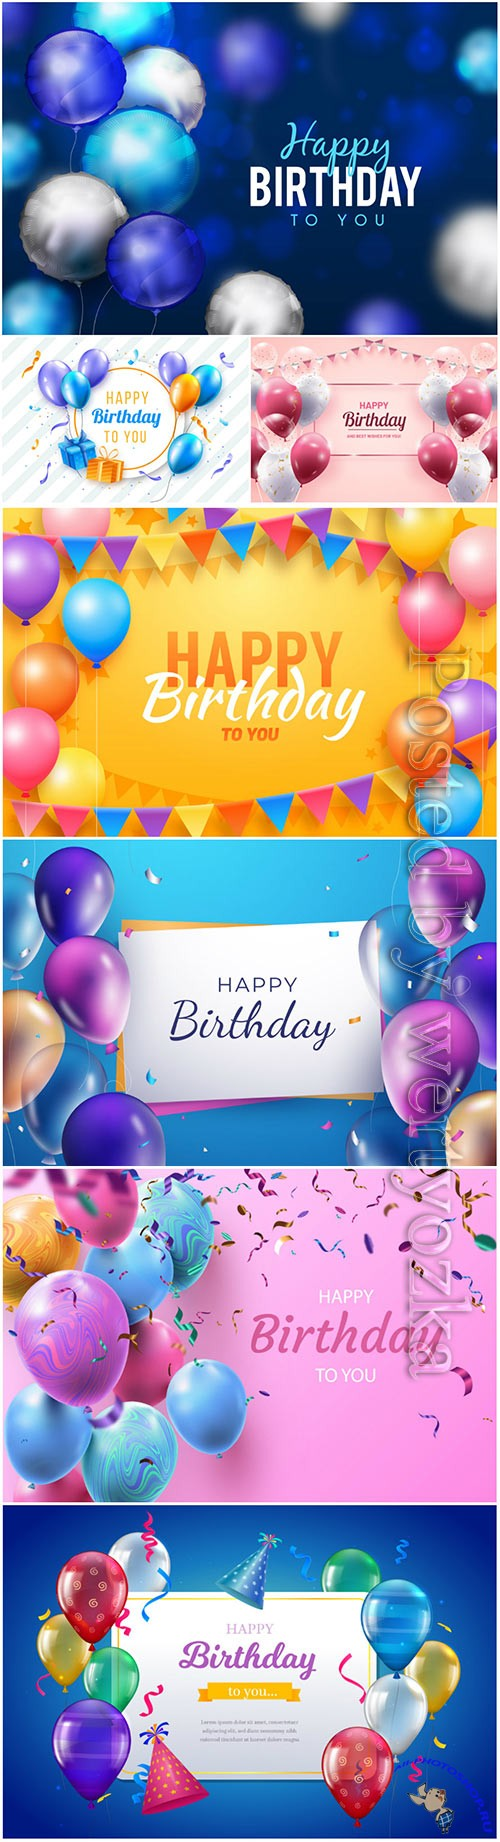 Happy birthday vector backgrounds